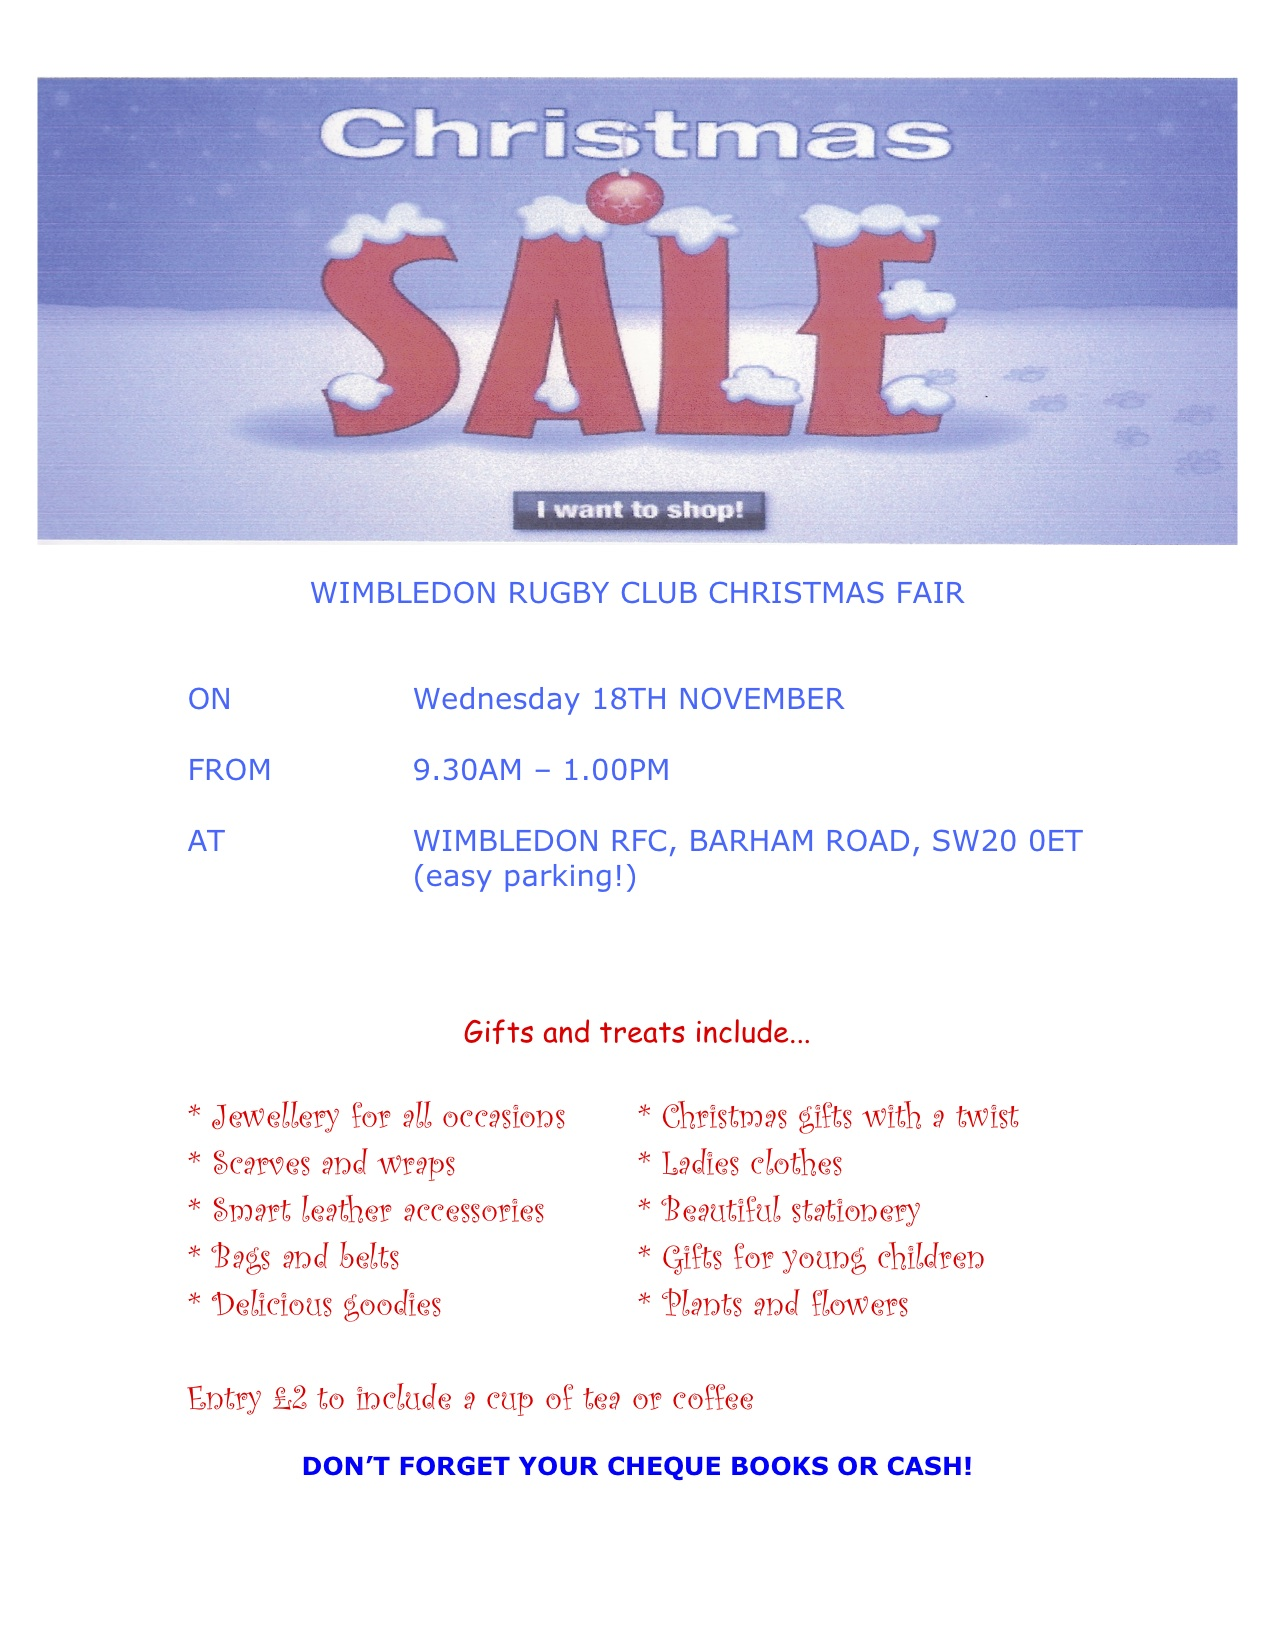 WIMBLEDON RUGBY CLUB CHRISTMAS FAIR,<br /> Wednesday 18TH NOVEMBER, 9.30AM – 1.00PM